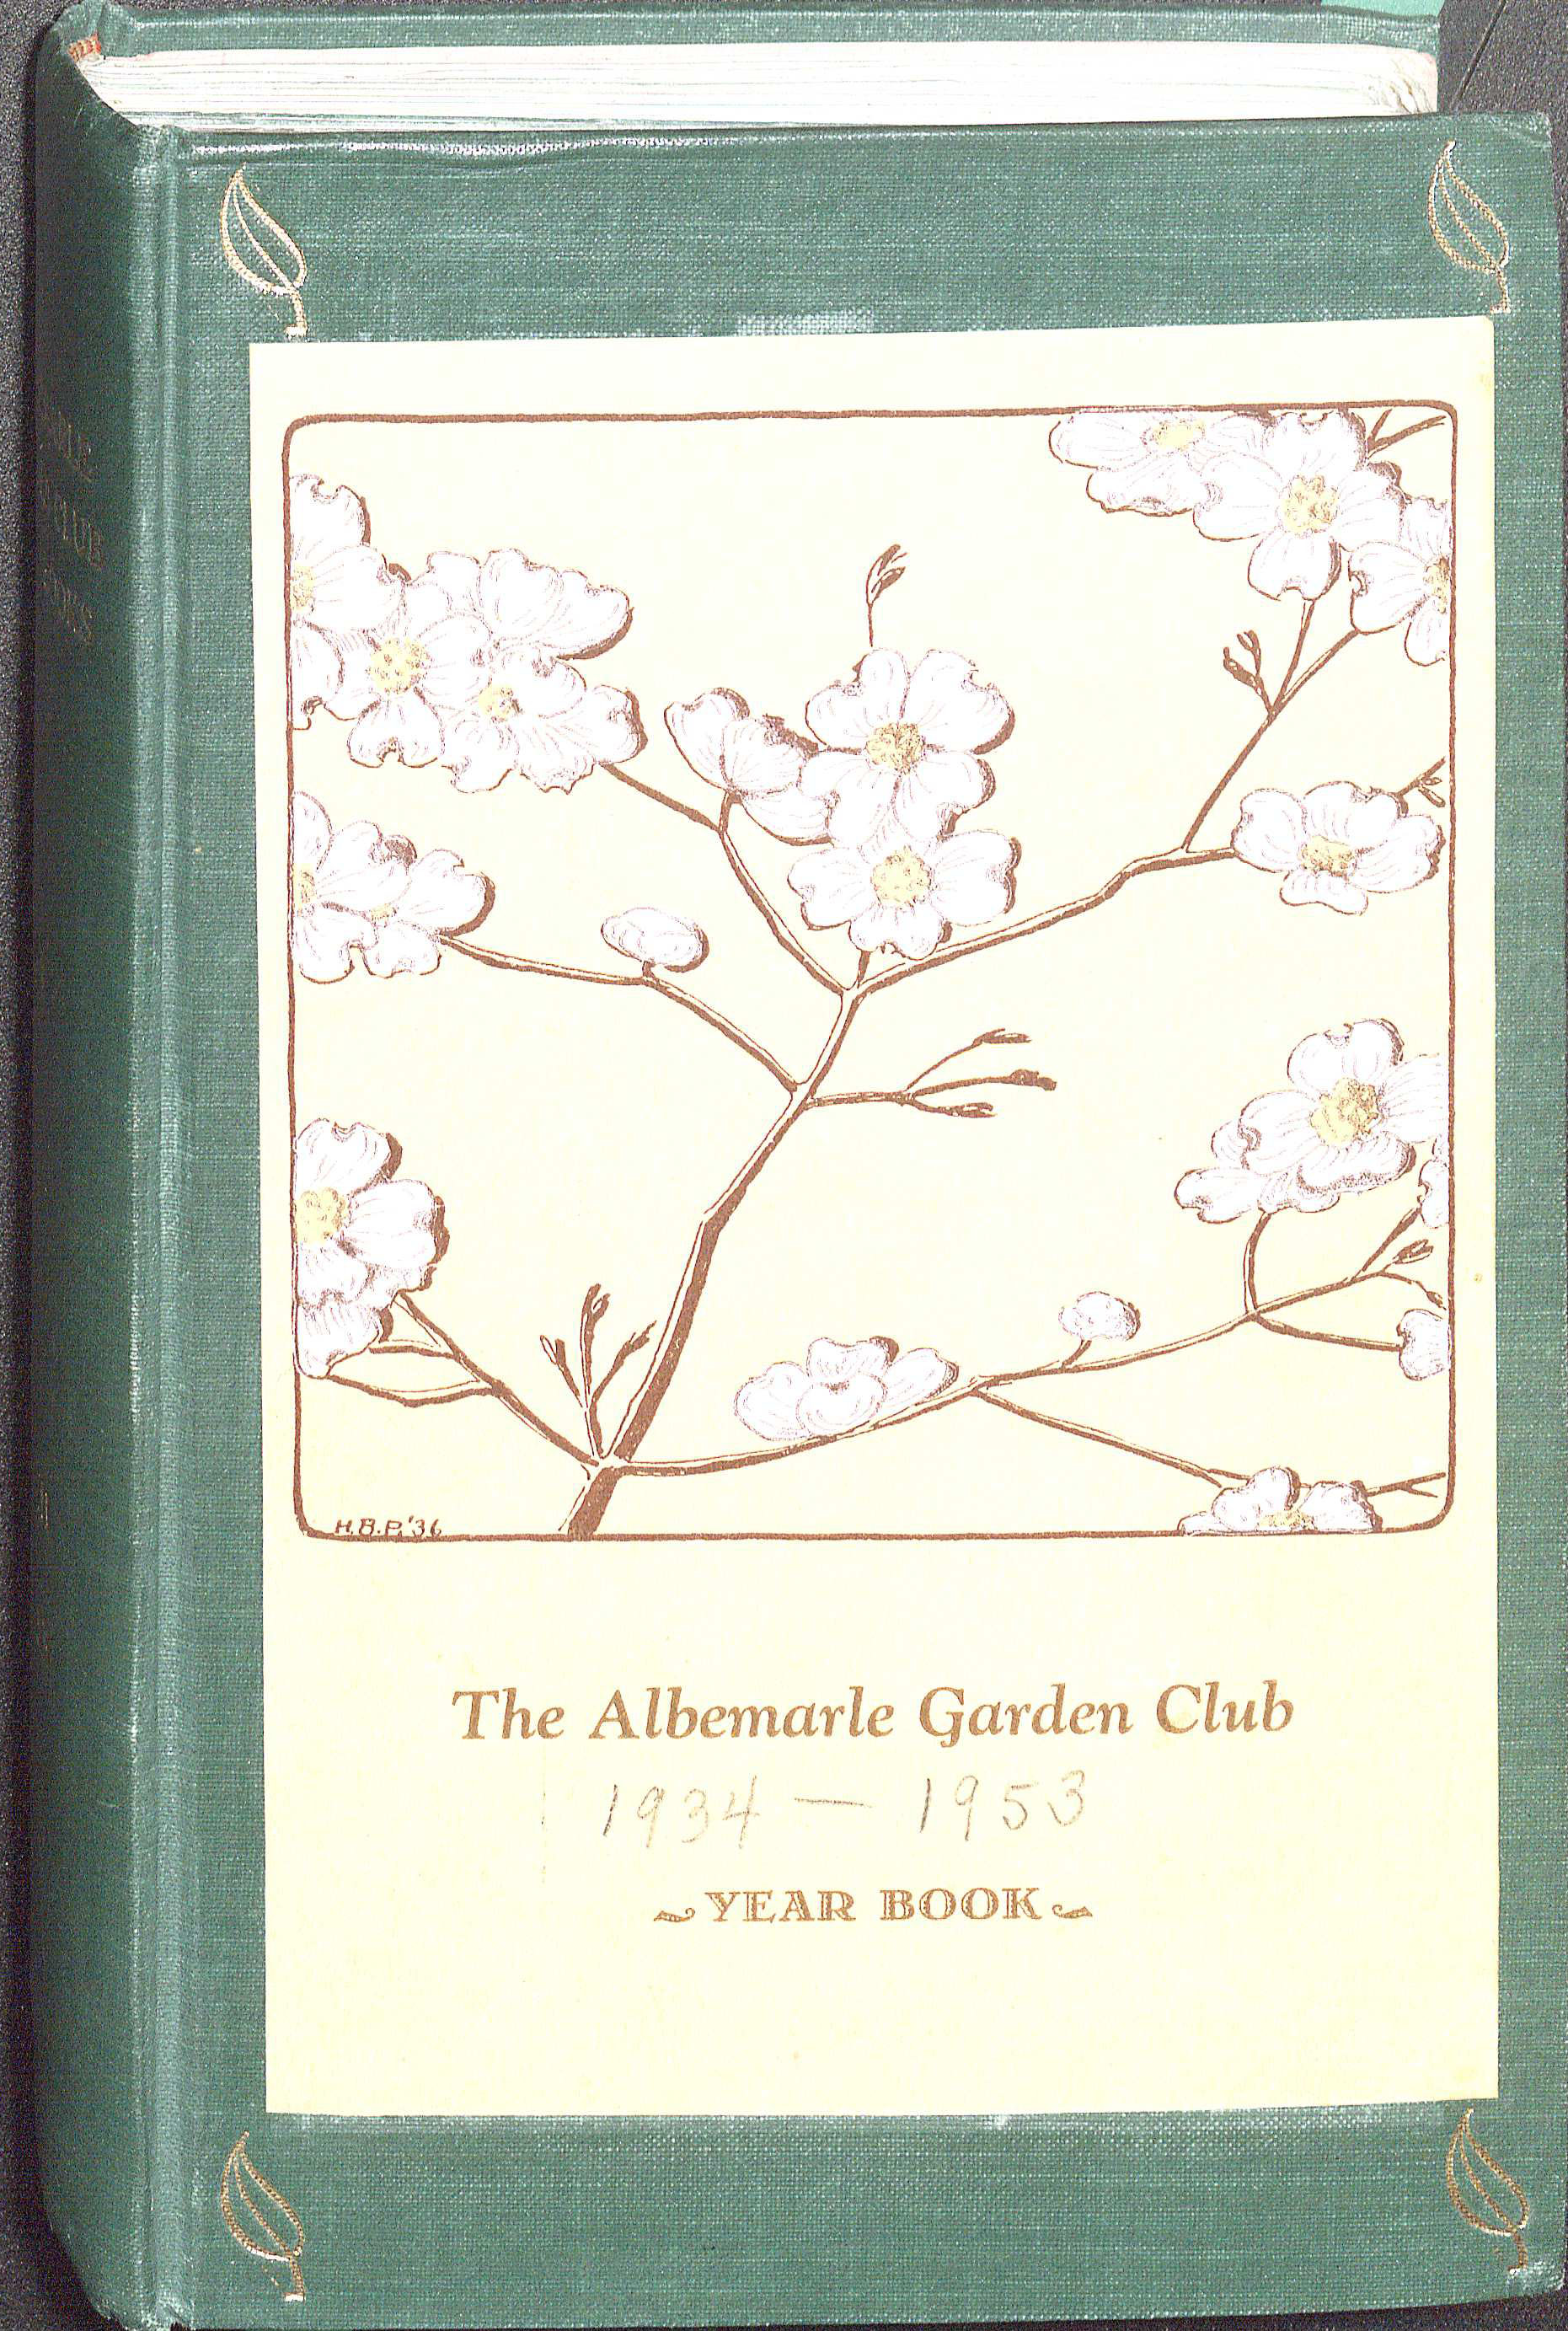 Albemarle Garden Club year book, 193.  The year book features the club's programs, members, and other activities. (MSS 5520. Image by Petrina Jackson)